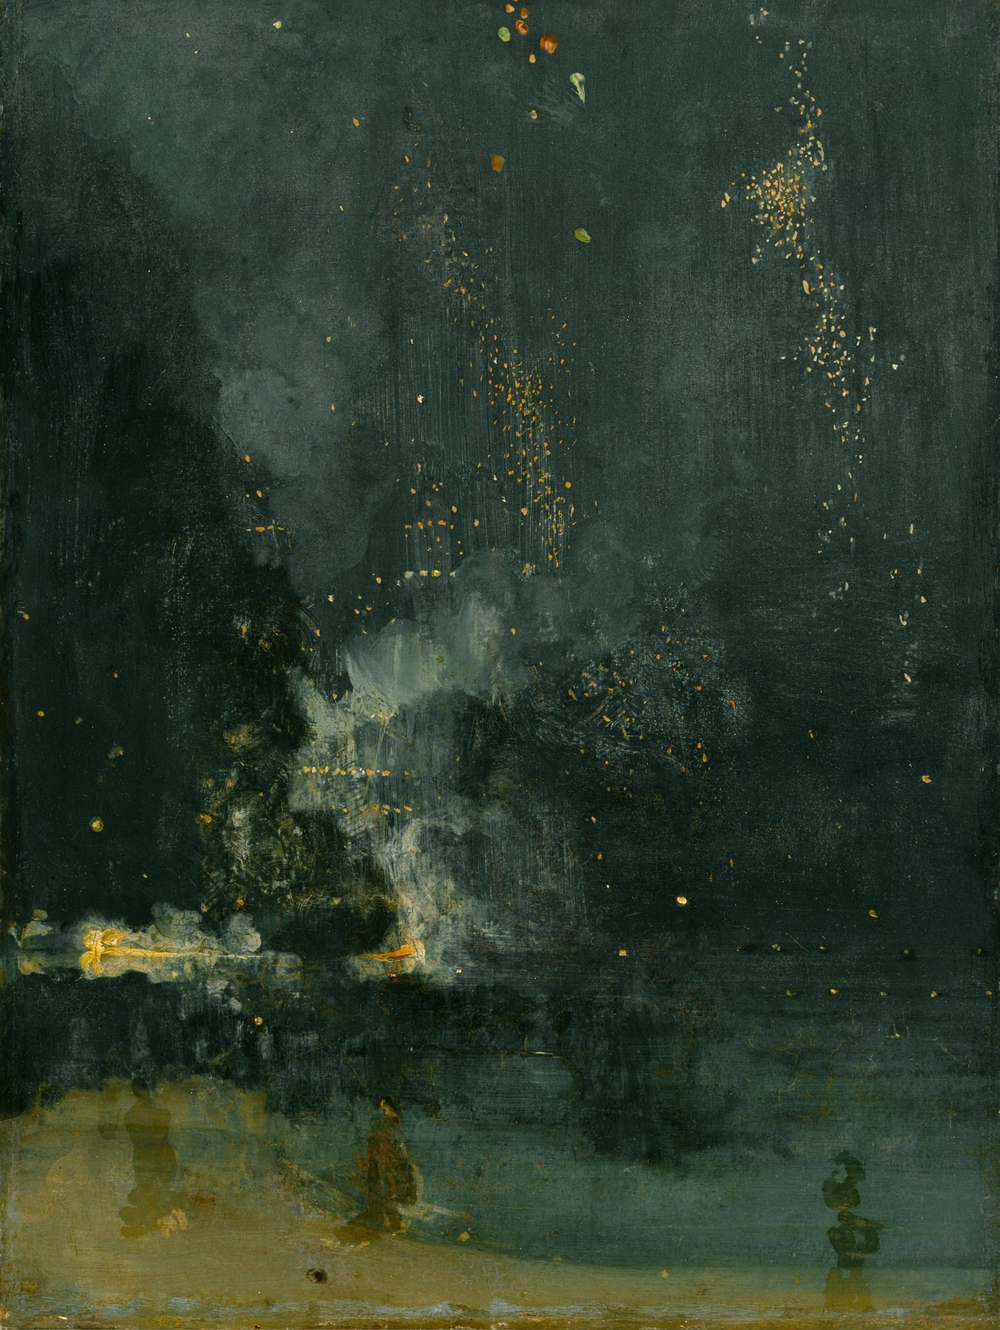 James McNeill Whistler - Nocturne in black and gold - 1874.